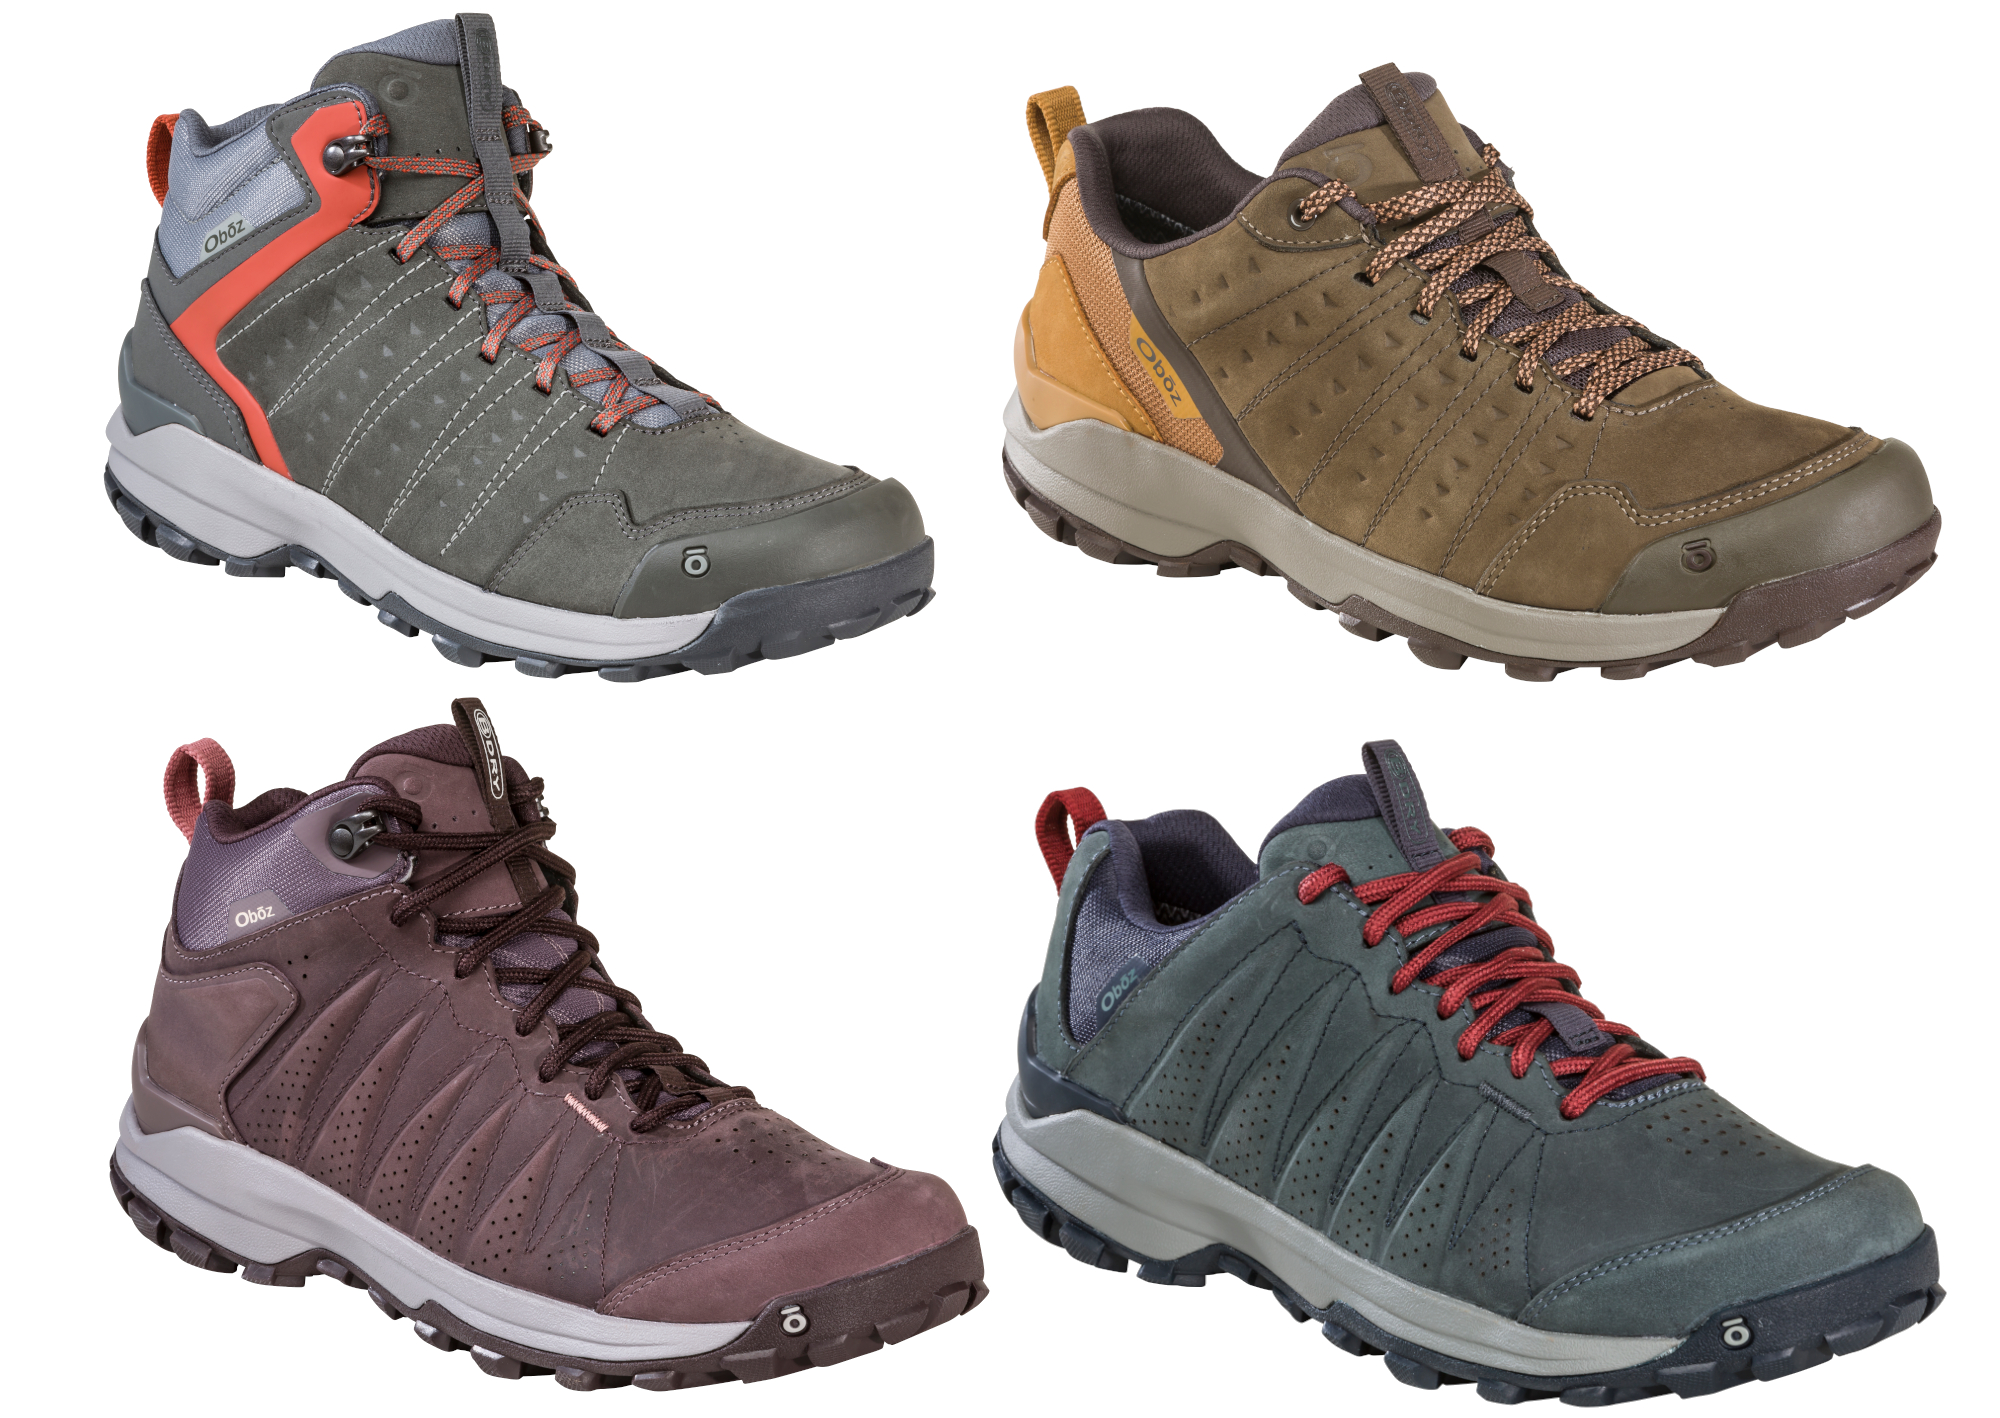 Oboz Sypes Collection Hiking Shoes Men Women Mid Los.jpg